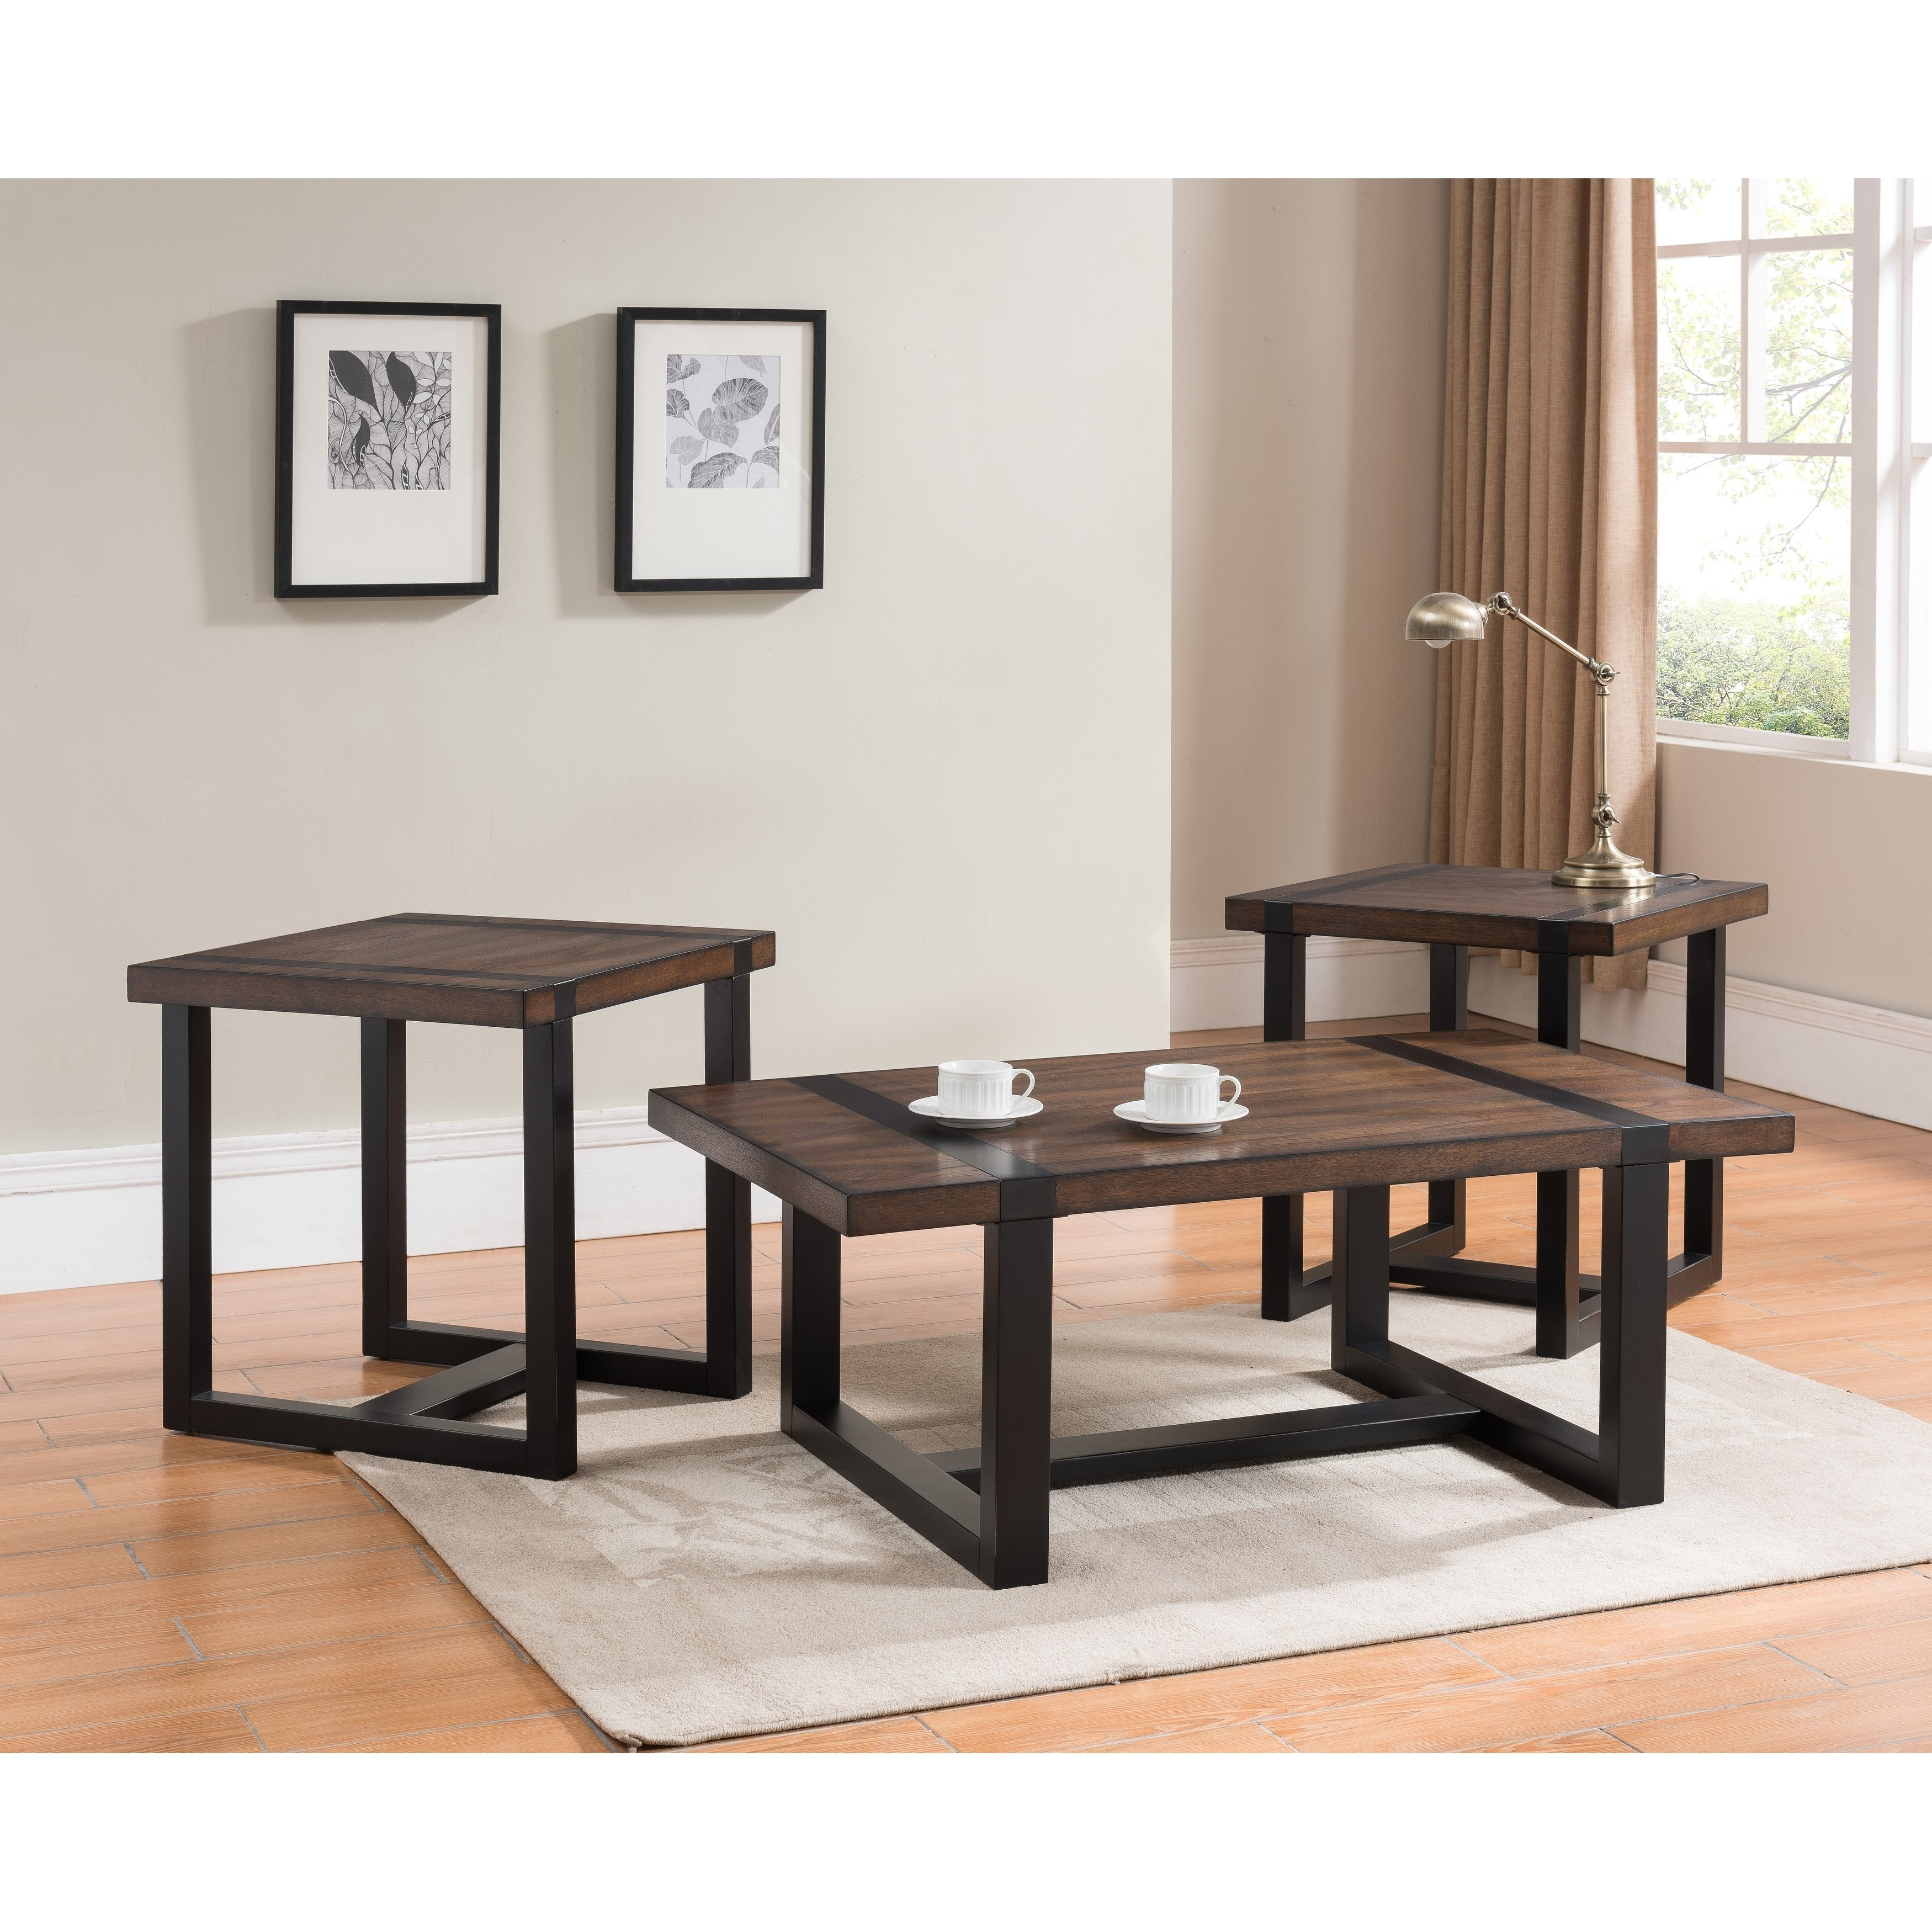 Shop Simmons Casegoods Warm Oak And Charcoal End Table – Free In Dixon Black 65 Inch Highboy Tv Stands (View 10 of 30)